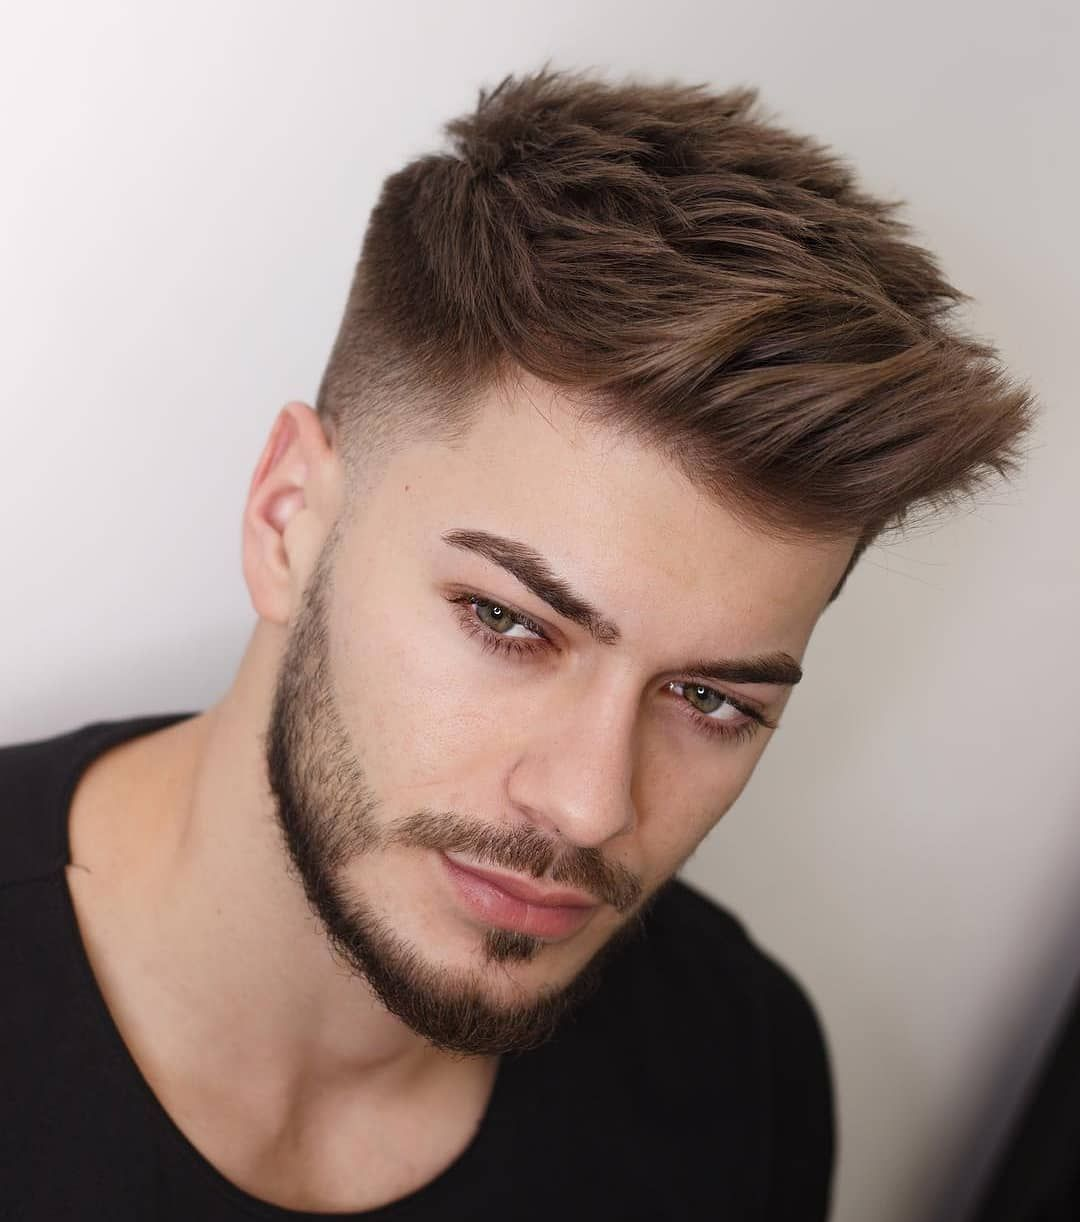 Trending Haircuts For Men In 2020 Bollywood Vibe In 2020 Men Haircut Styles Gents Hair Style Haircuts For Men